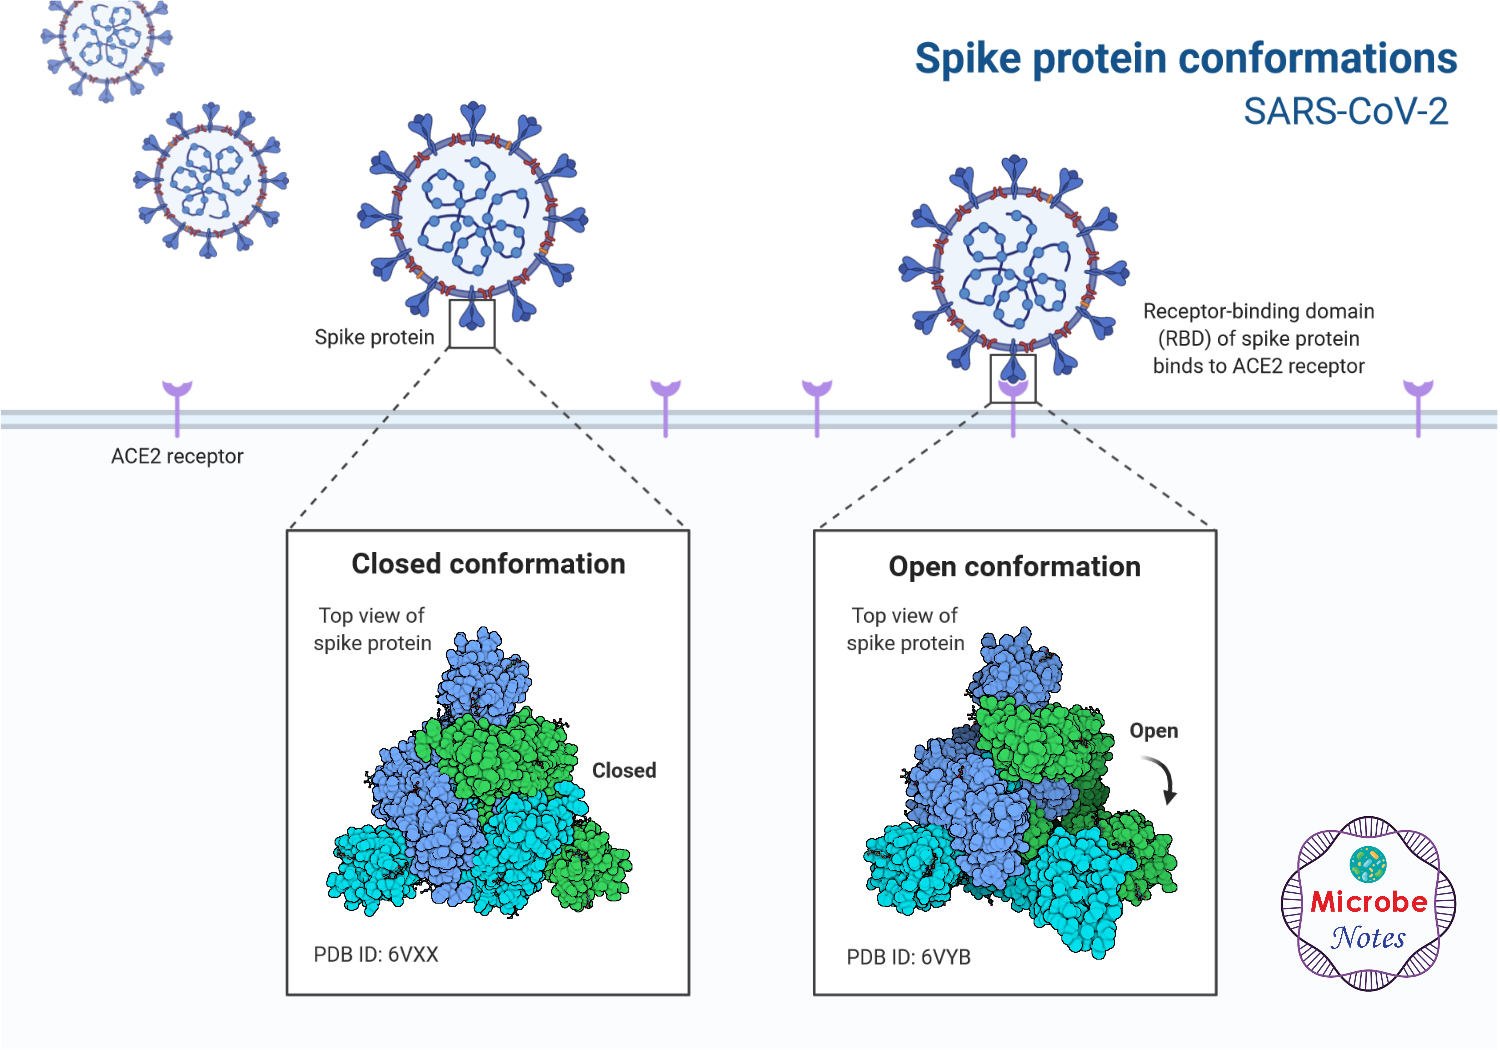 Spike Protein SARS-CoV-2